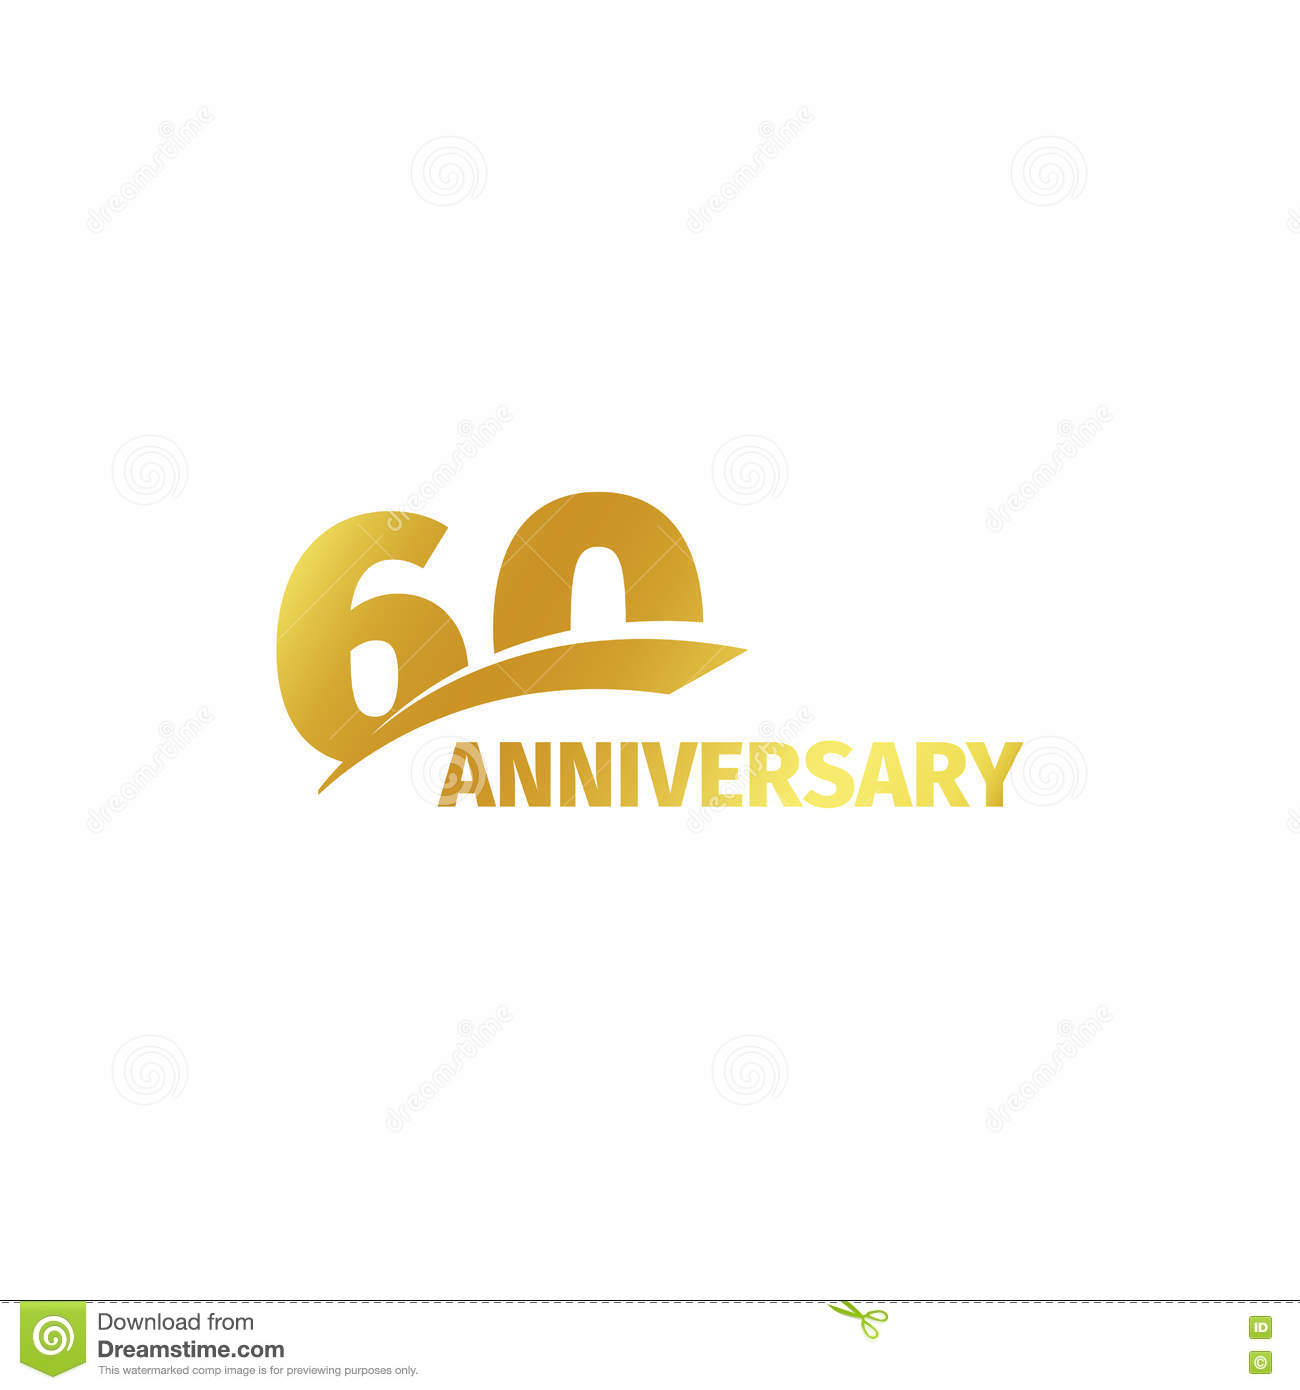 Isolated abstract golden 60th anniversary logo on white background isolated abstract golden 60th anniversary logo on white background 60 number logotype sixty years jubilee celebration marriage emblem kristyandbryce Choice Image